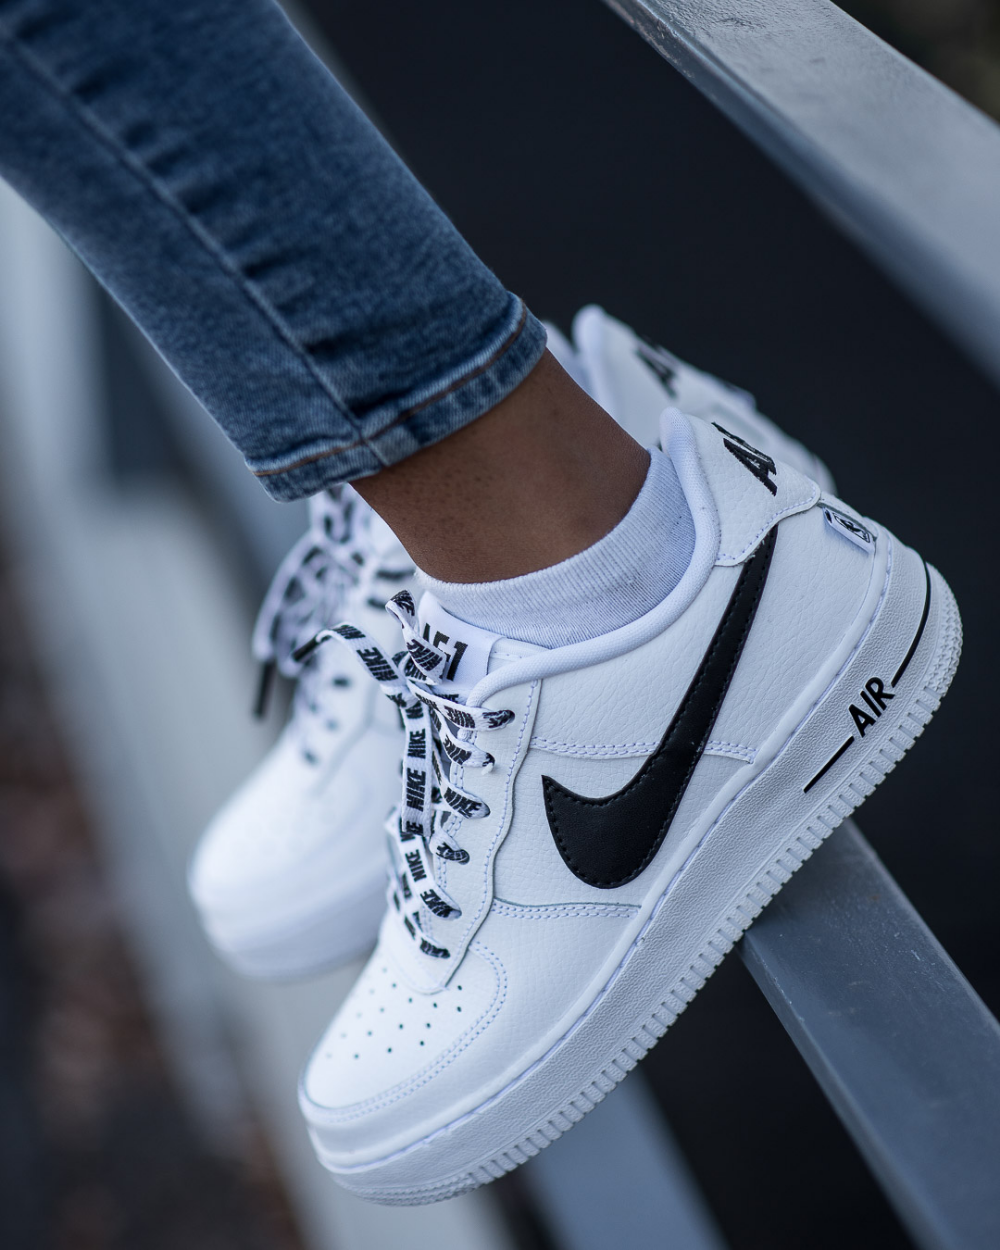 Nike Airforce 1: Sneakers of the Month | Turnschuhe